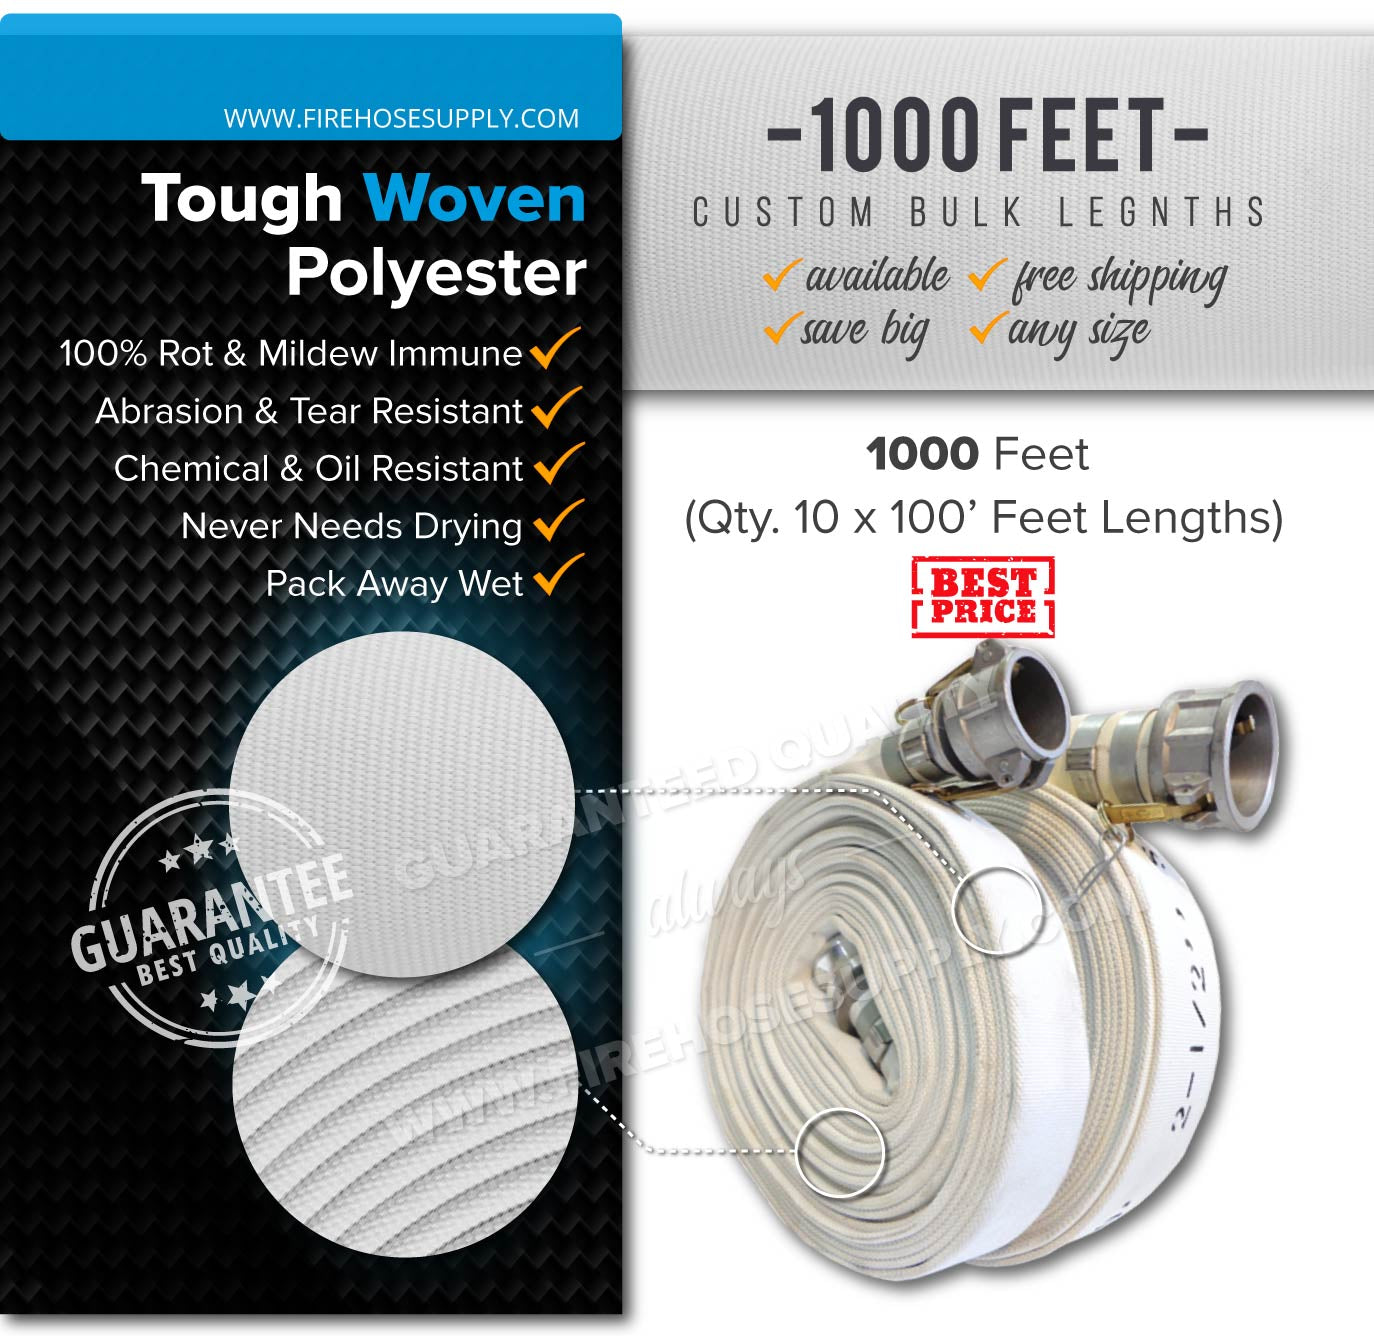 1.5 inch 1000 ( 10 x 100) feet camlock quick connect hose polyester bulk wholesale